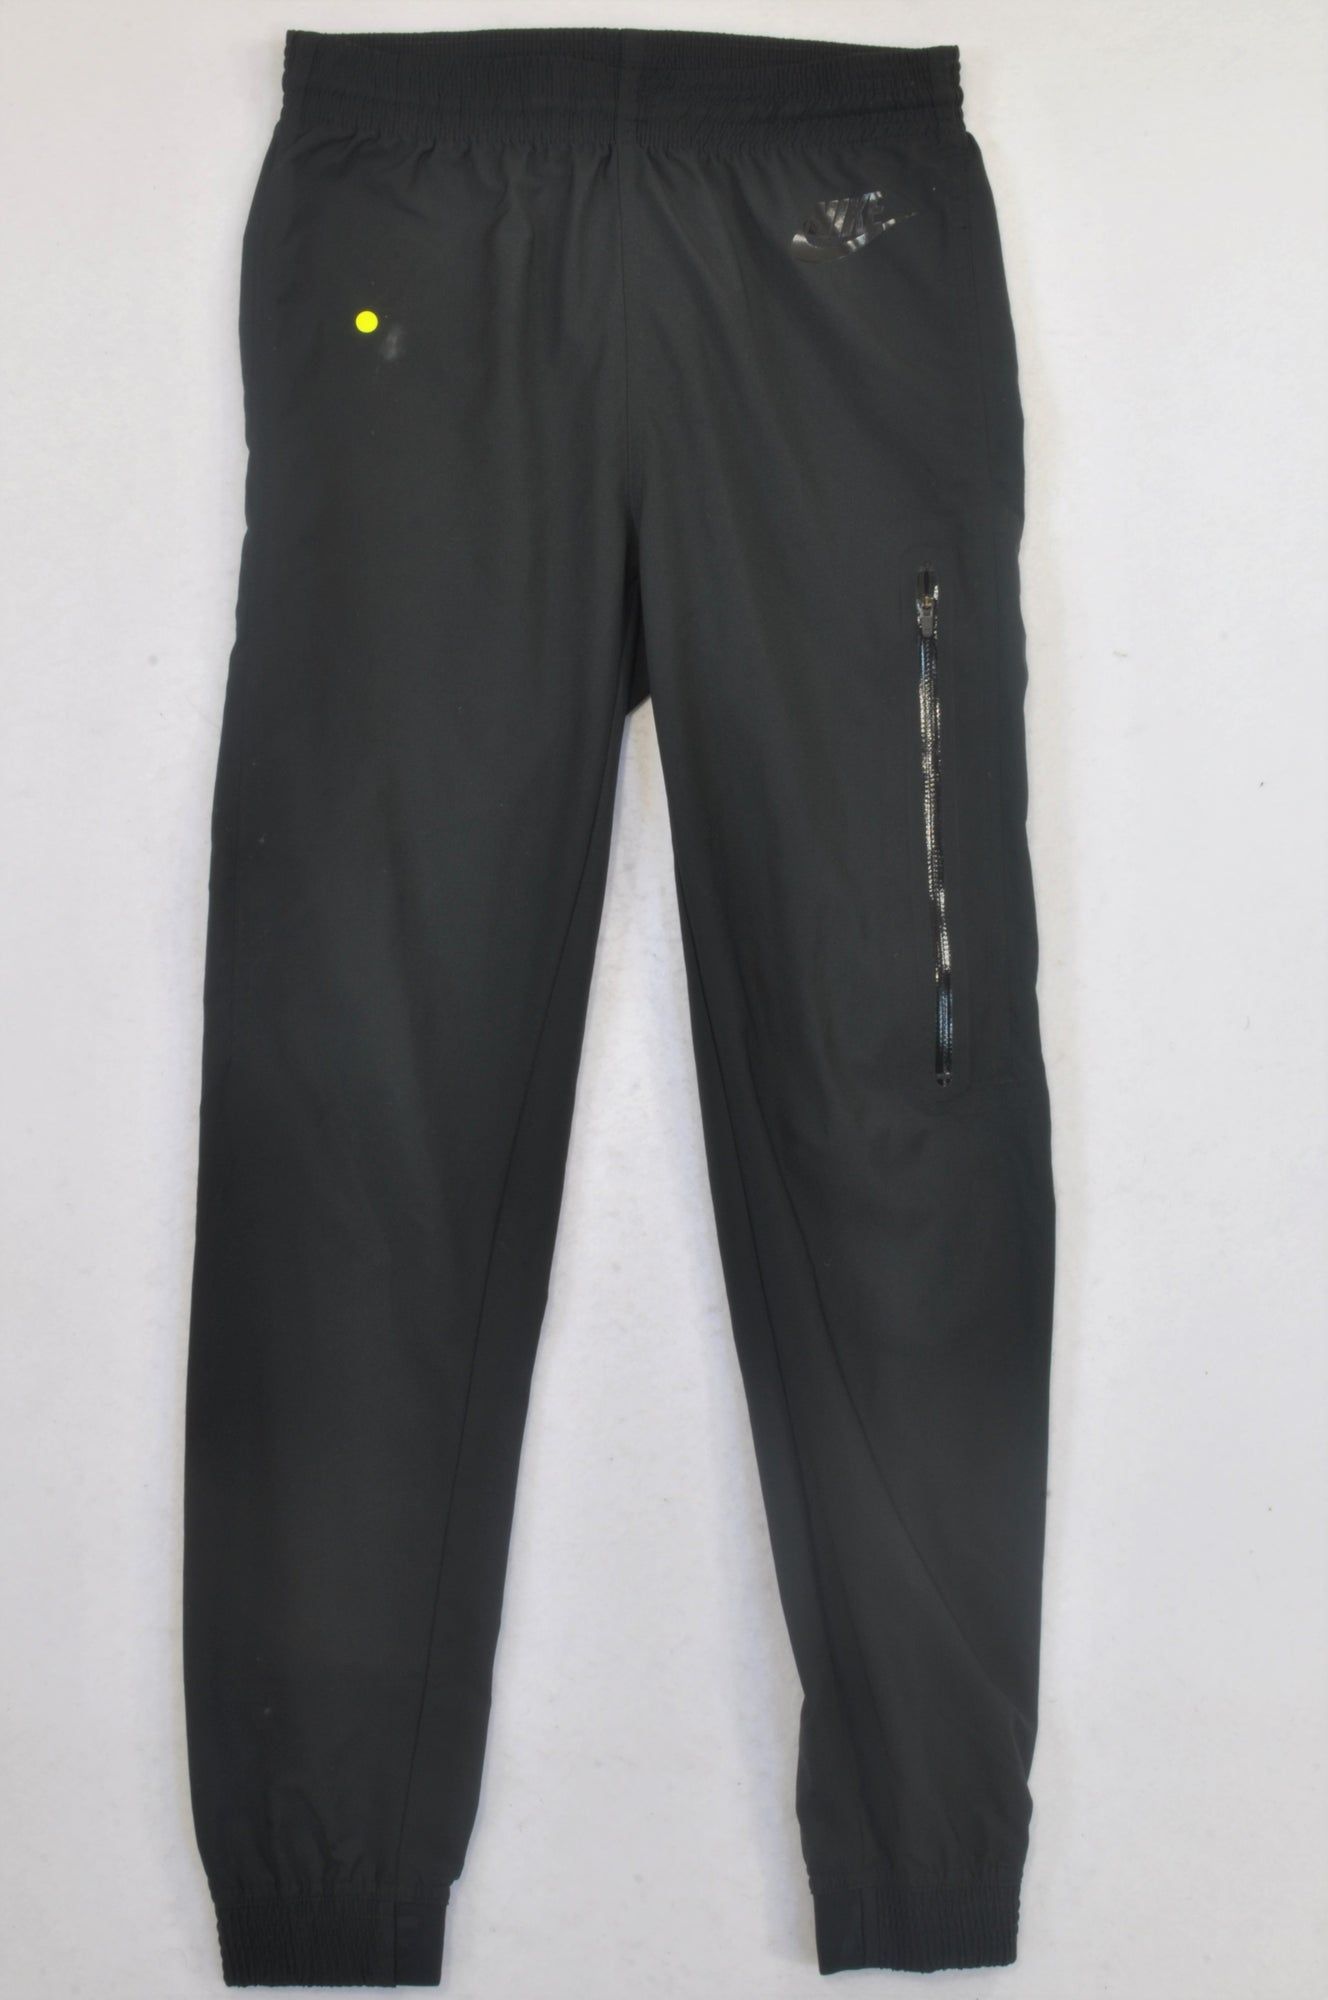 a7b2b2cefddf Nike Black Cuffed Track Pants Unisex 13-14 years – Once More